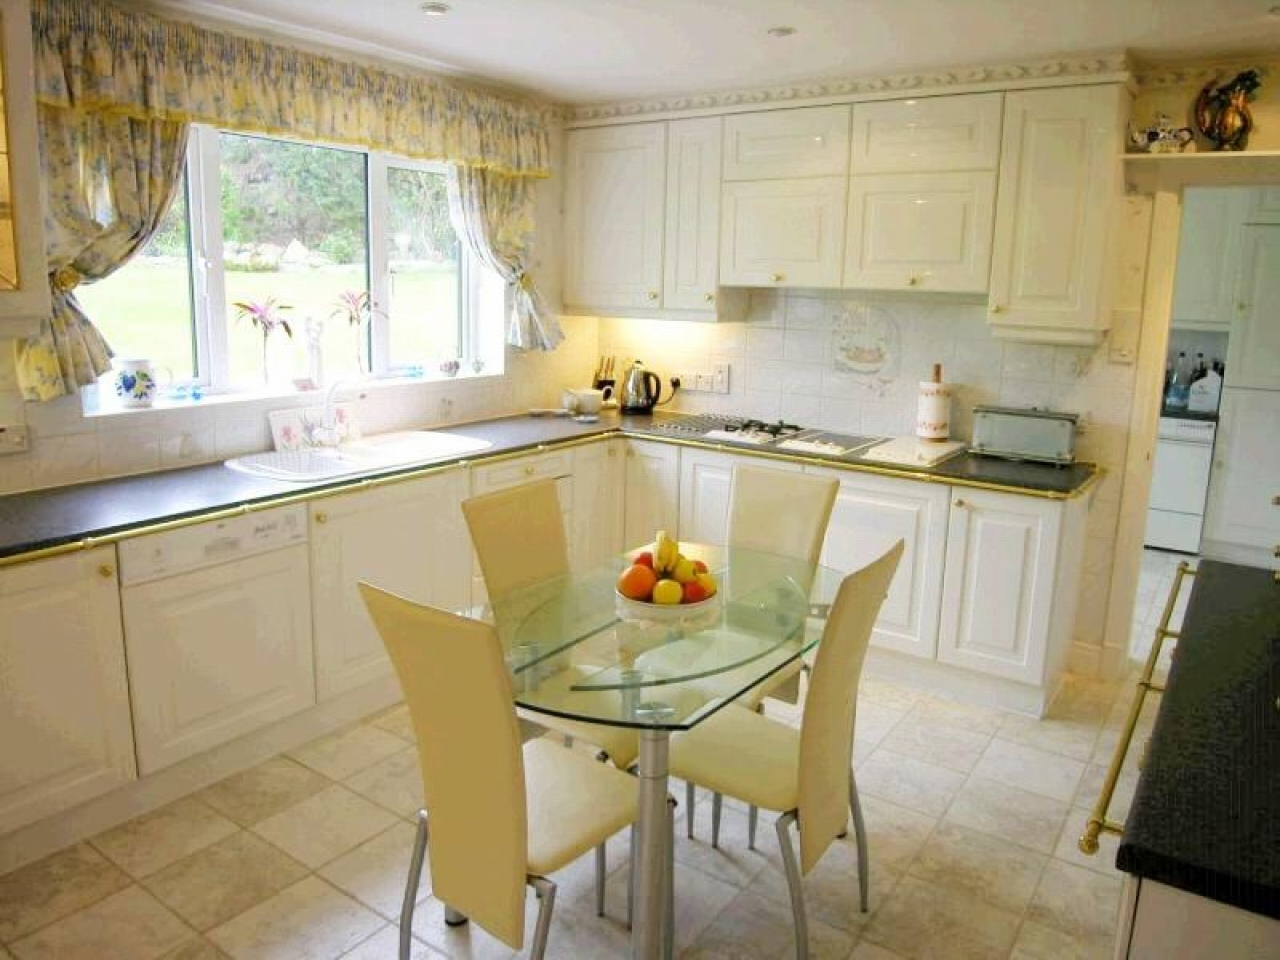 4 bedroom detached house For Sale in Laxey - 7